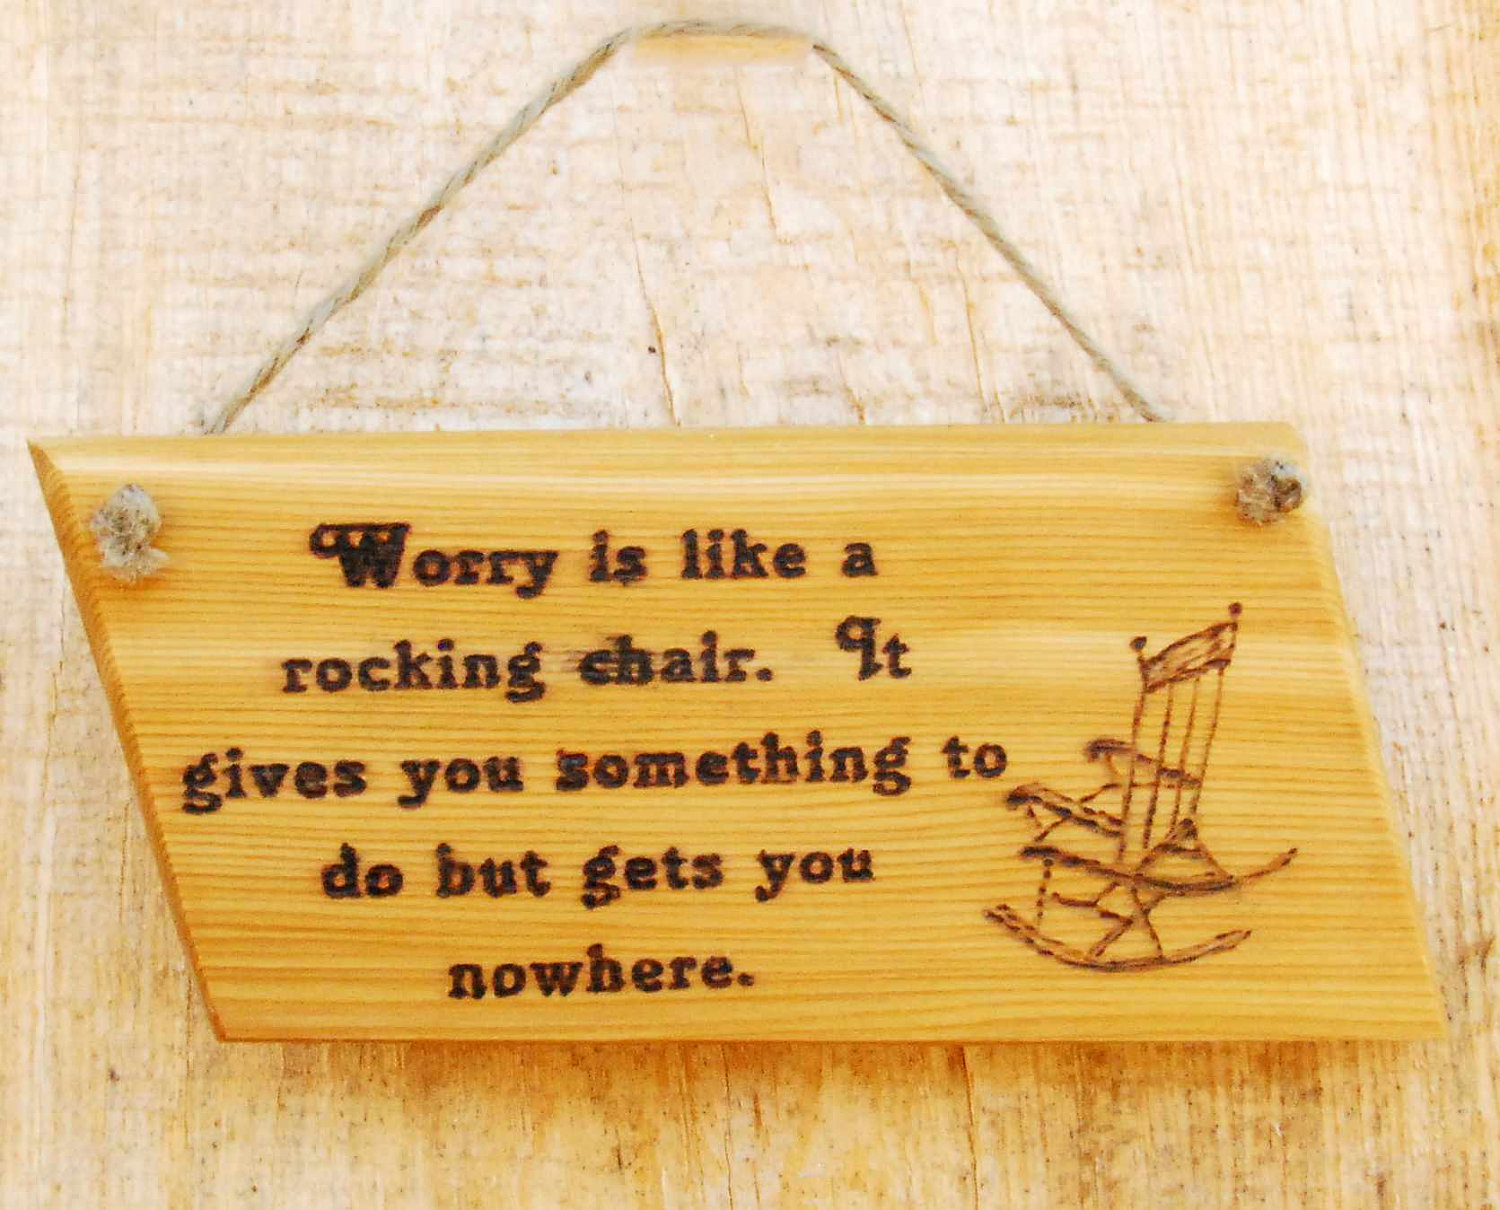 Worry Is Like A Rocking Chair. It Gives You Something To Do But Gets You Nowhere